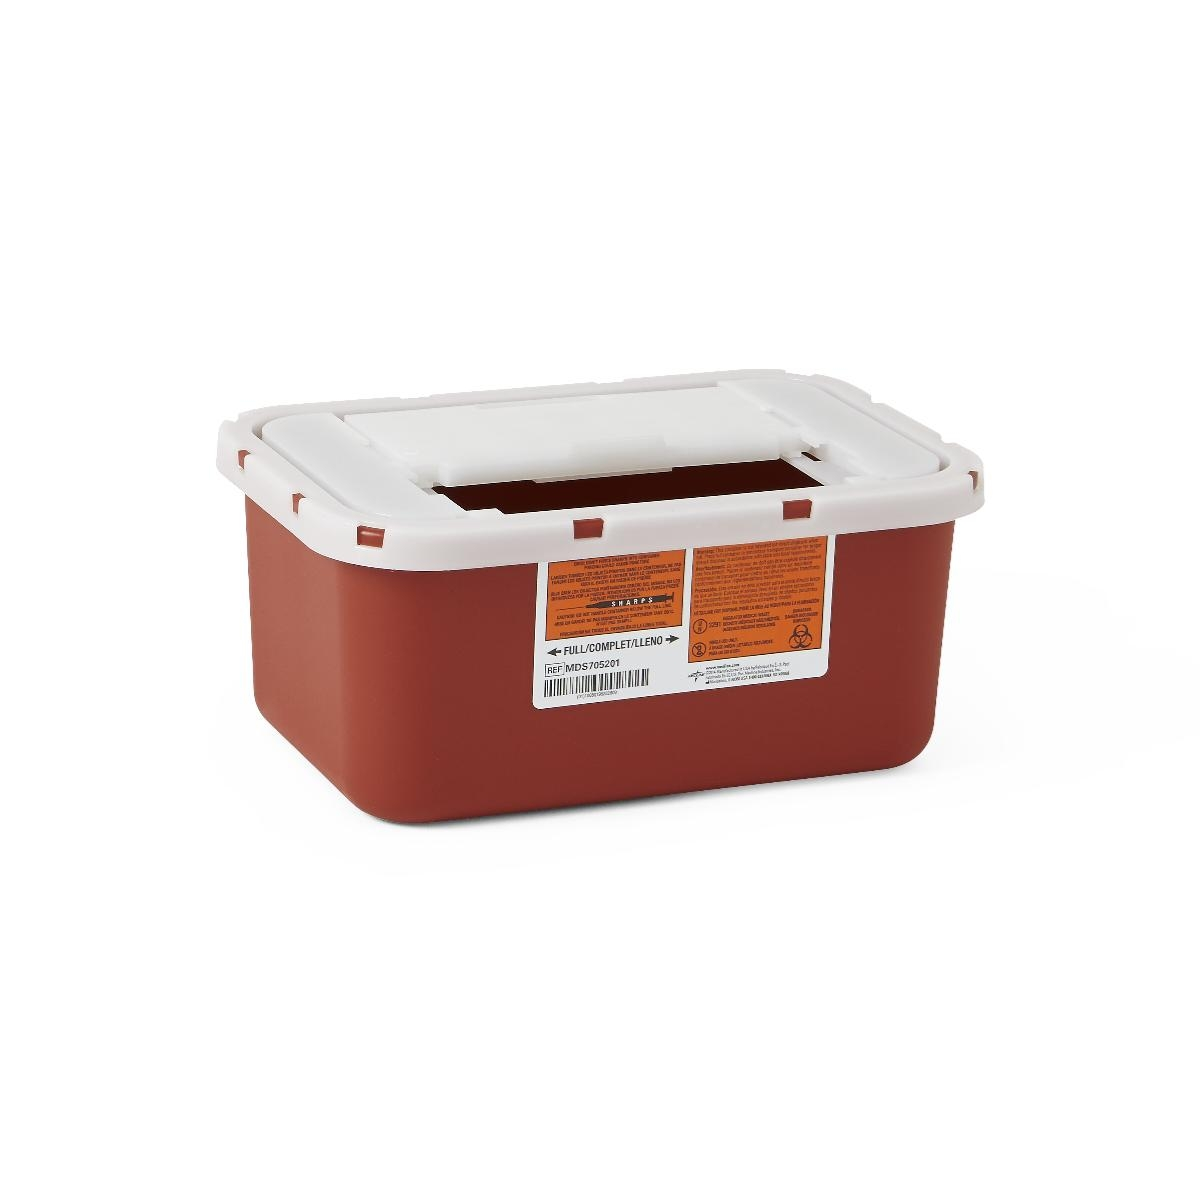 Nursing Supplies & Patient Care Sharps Containers - Mds705201 - Container Sharps 1 Ga. Red Wall/free MDS705201